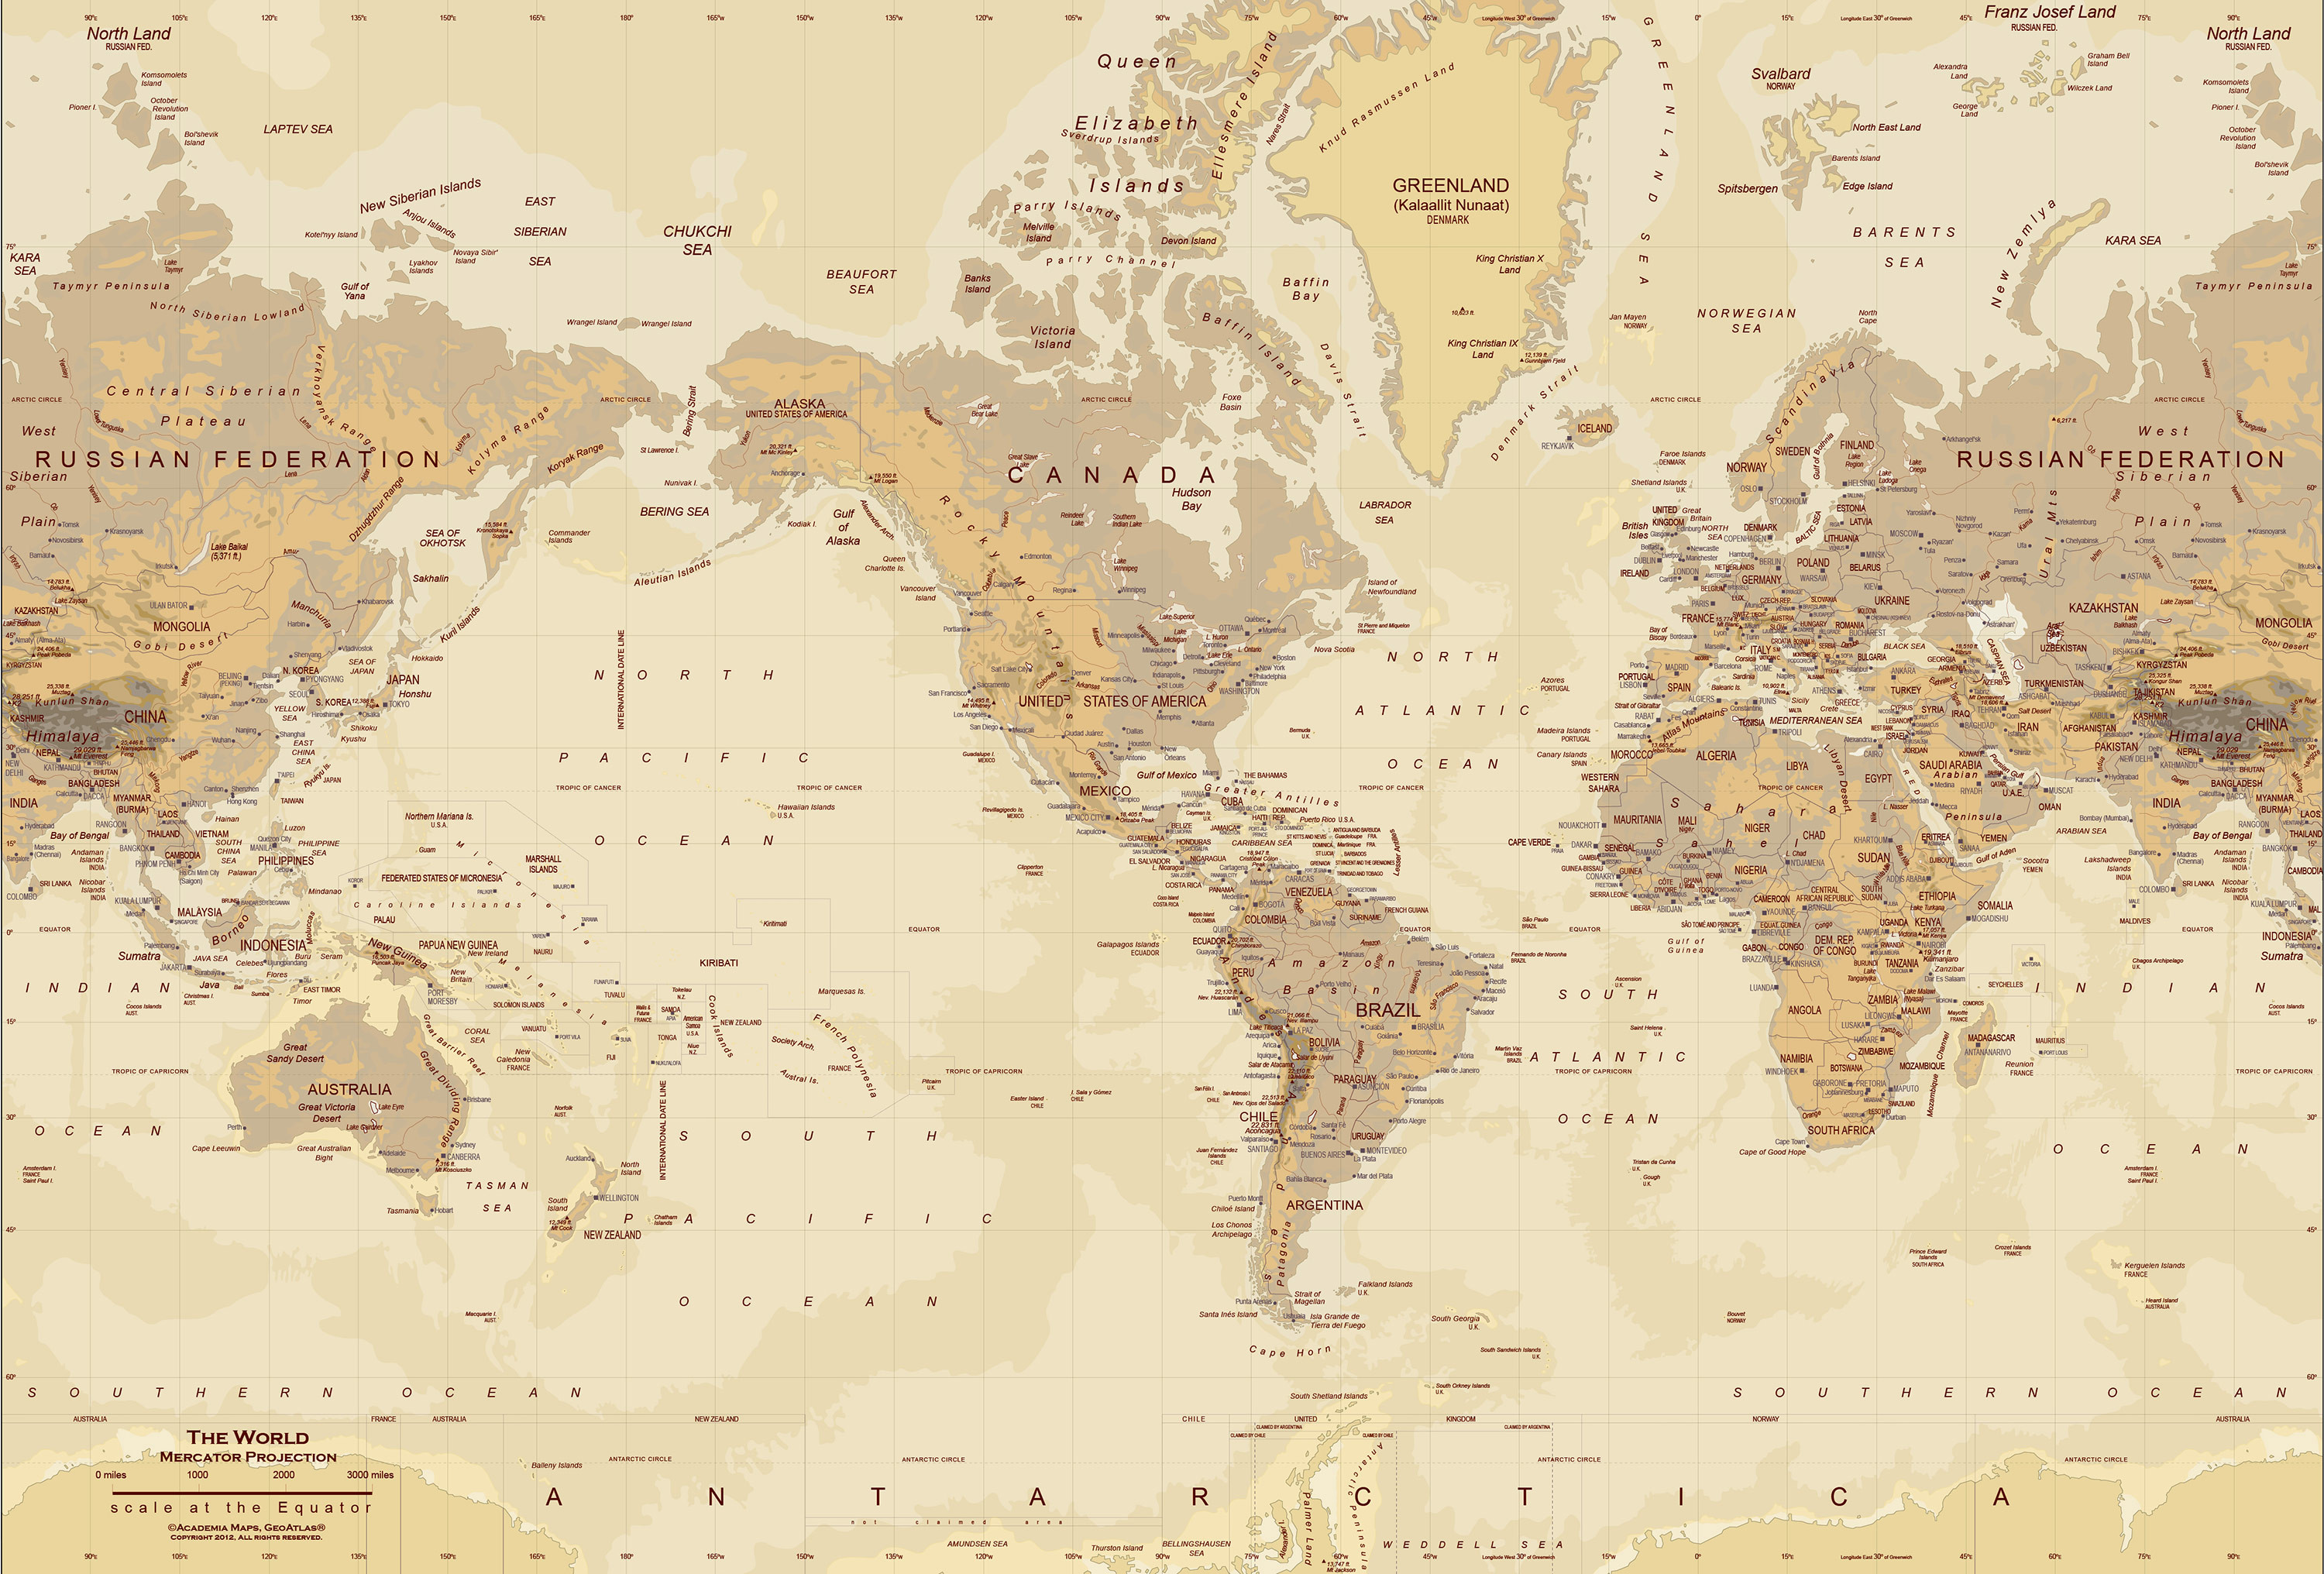 Old World Map Desktop Wallpaper 70 images in Collection Page 1 3000x2032